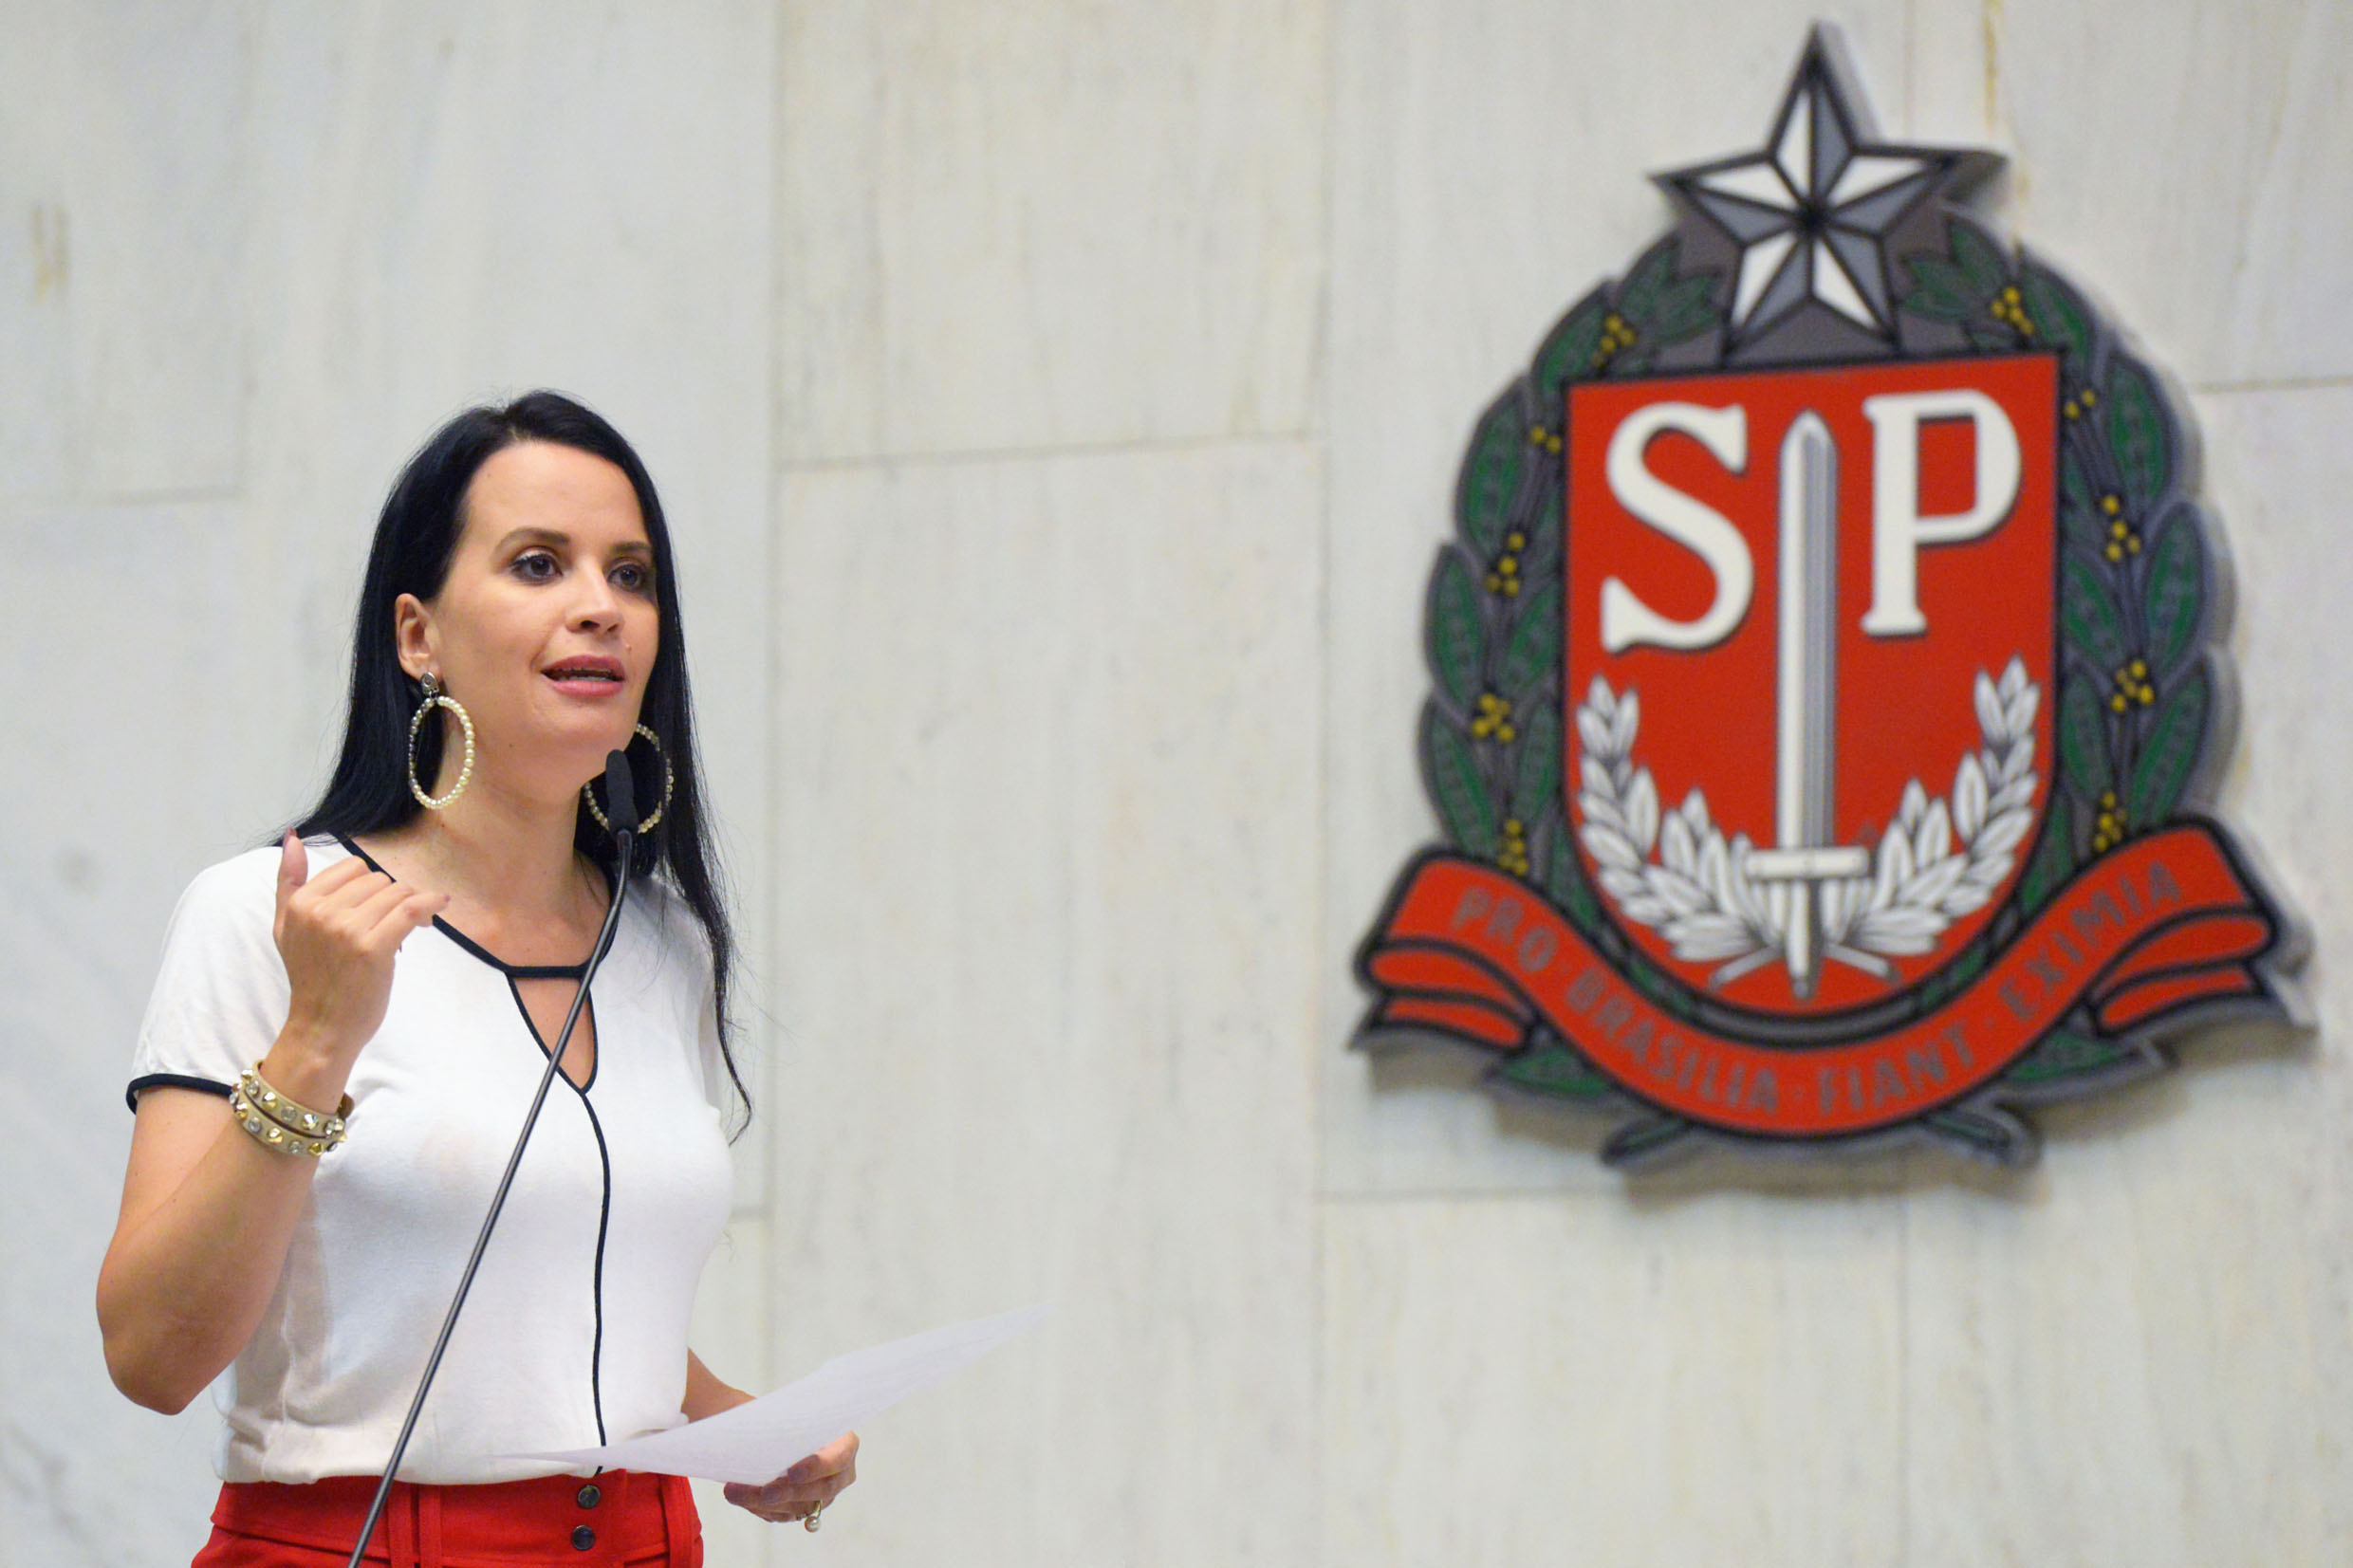 Leticia Aguiar<a style='float:right' href='https://www3.al.sp.gov.br/repositorio/noticia/N-02-2021/fg260981.jpg' target=_blank><img src='/_img/material-file-download-white.png' width='14px' alt='Clique para baixar a imagem'></a>